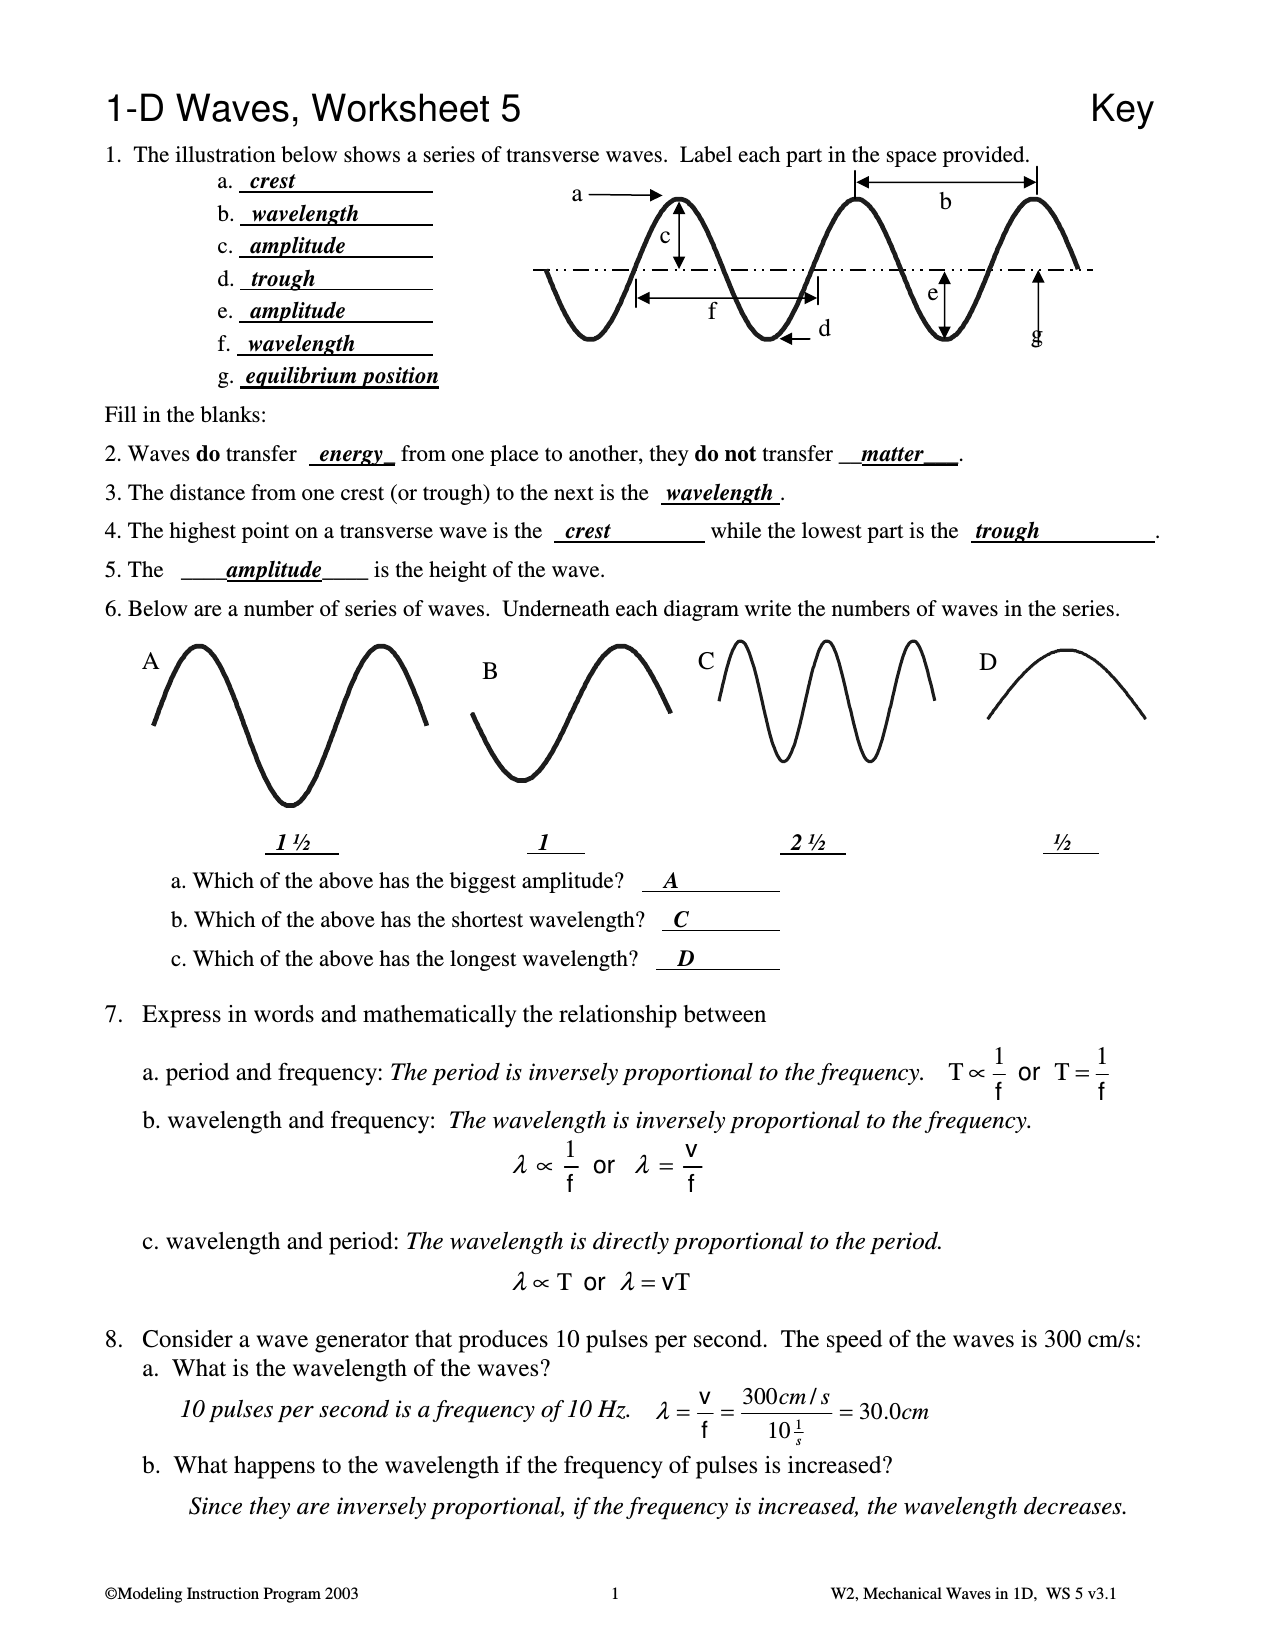 Worksheet Labeling Waves Answers 1